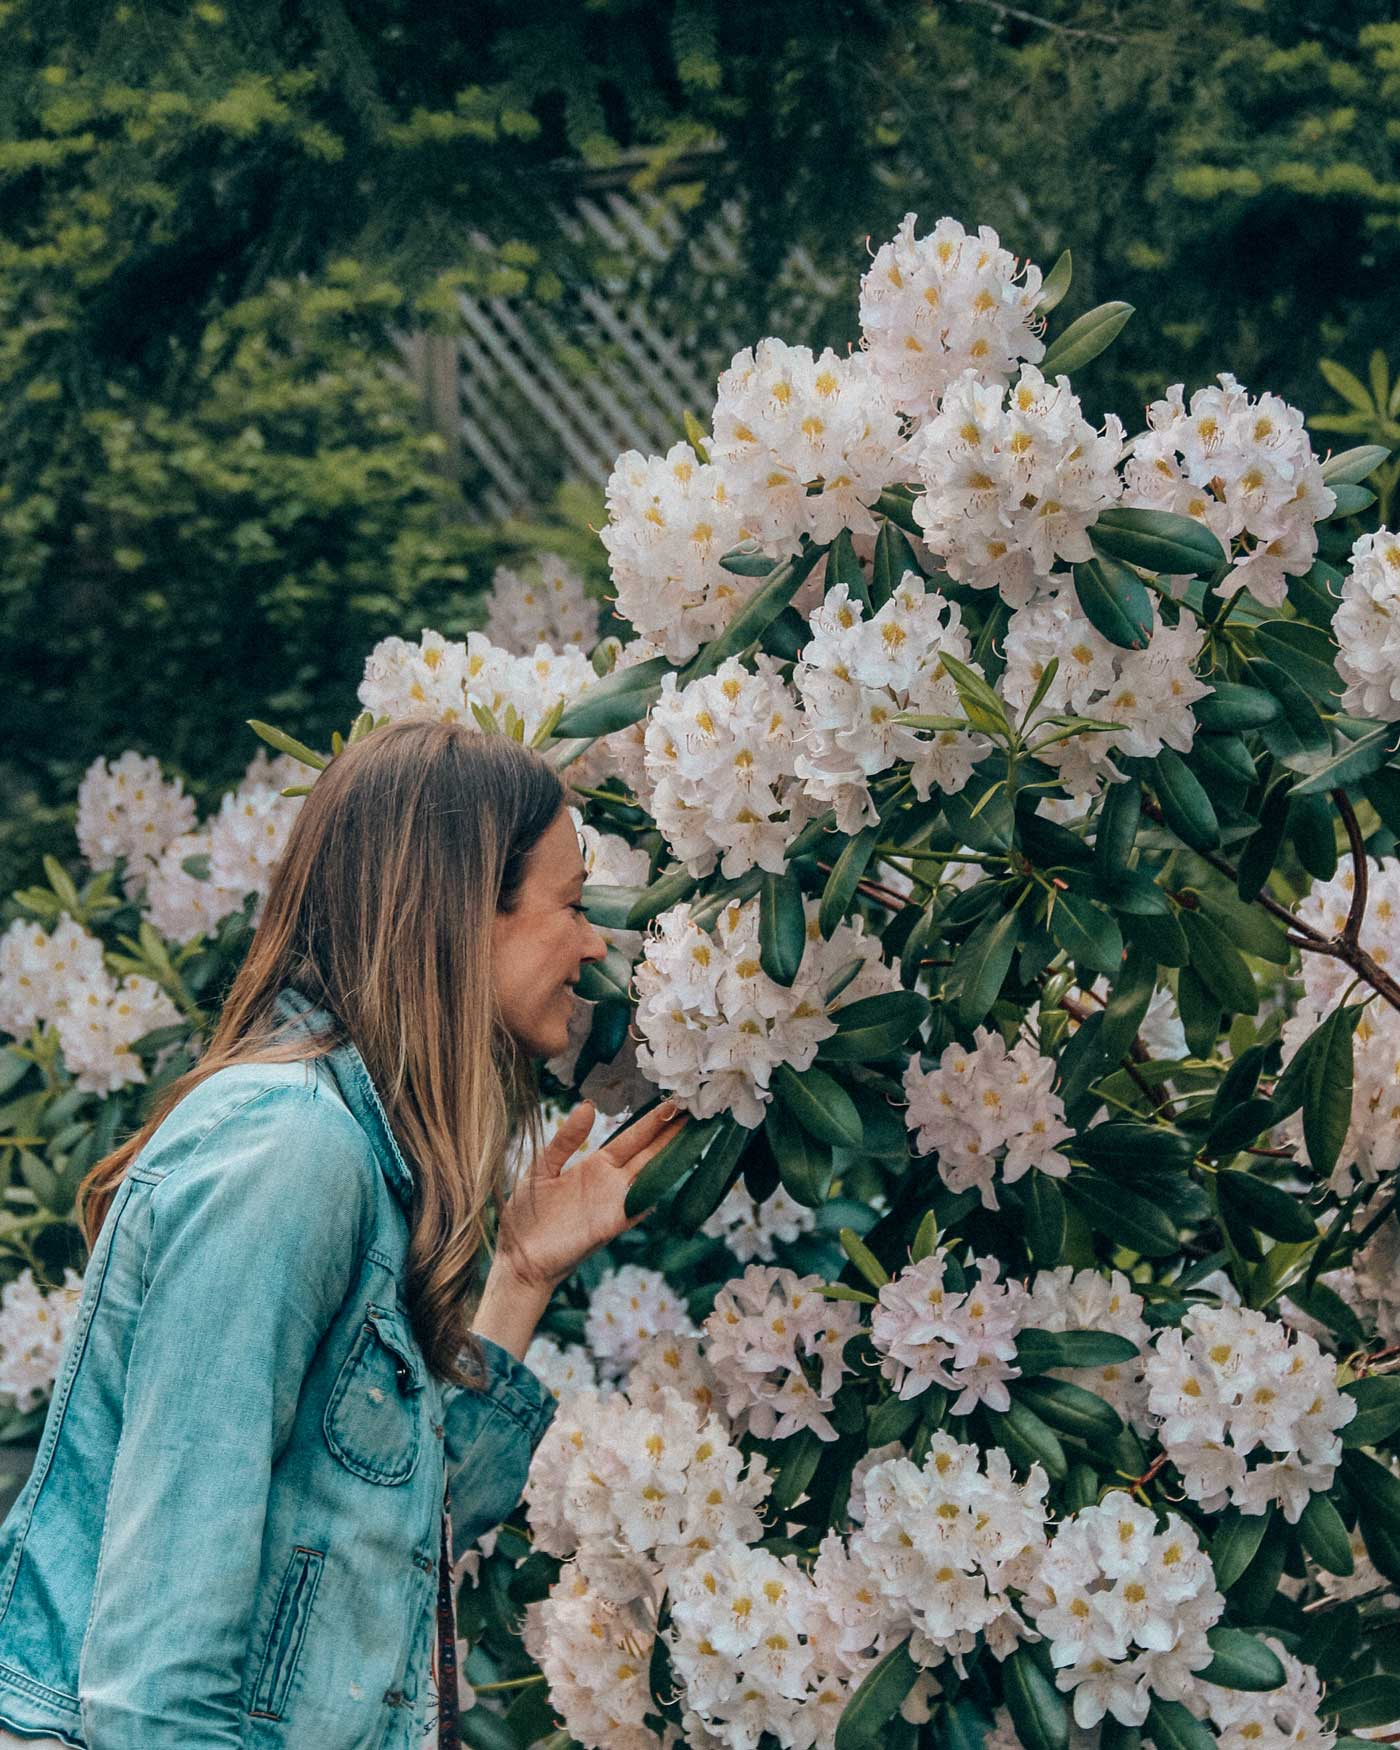 The gardens at Fairmont Chateau Whistler are beautiful. Check out all the things to do when you visit Whistler. #girlstrip #whistler #bc #CANADA